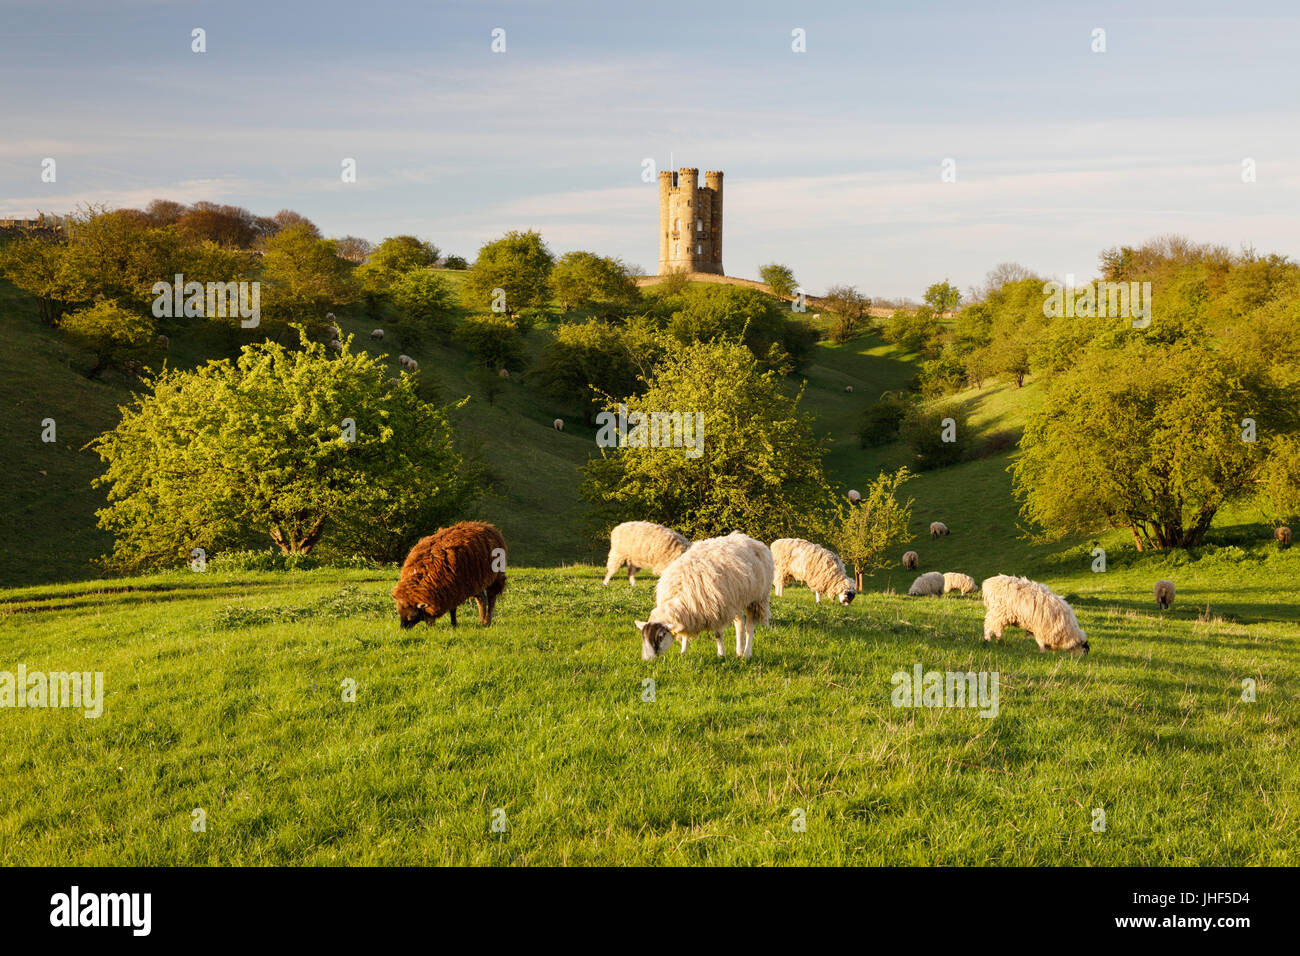 Broadway Tower and grazing sheep, Broadway, Cotswolds, Worcestershire, England, United Kingdom, Europe - Stock Image